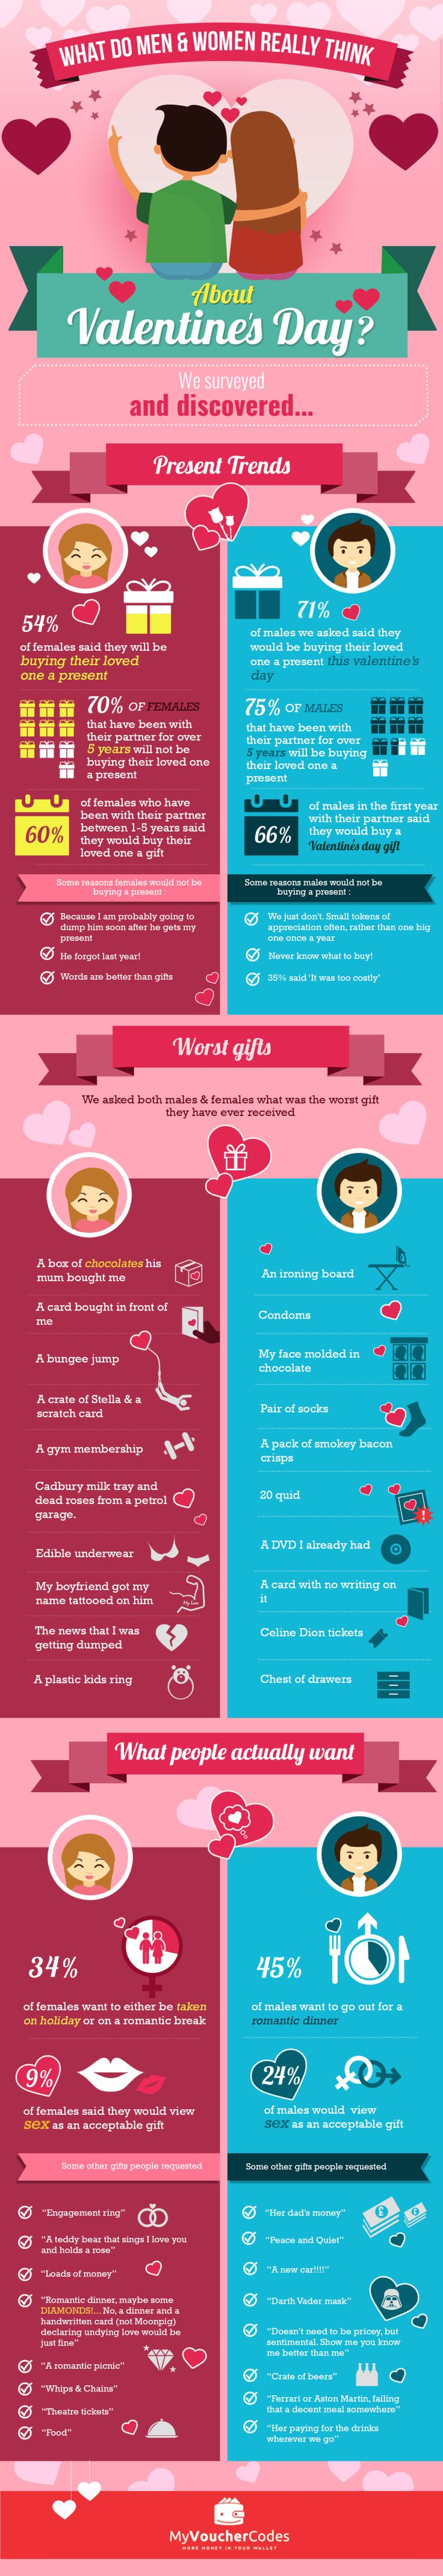 What do men and women really think about Valentines Day and what Valentines gifts do people really want. Brilliant Valentines day infographic